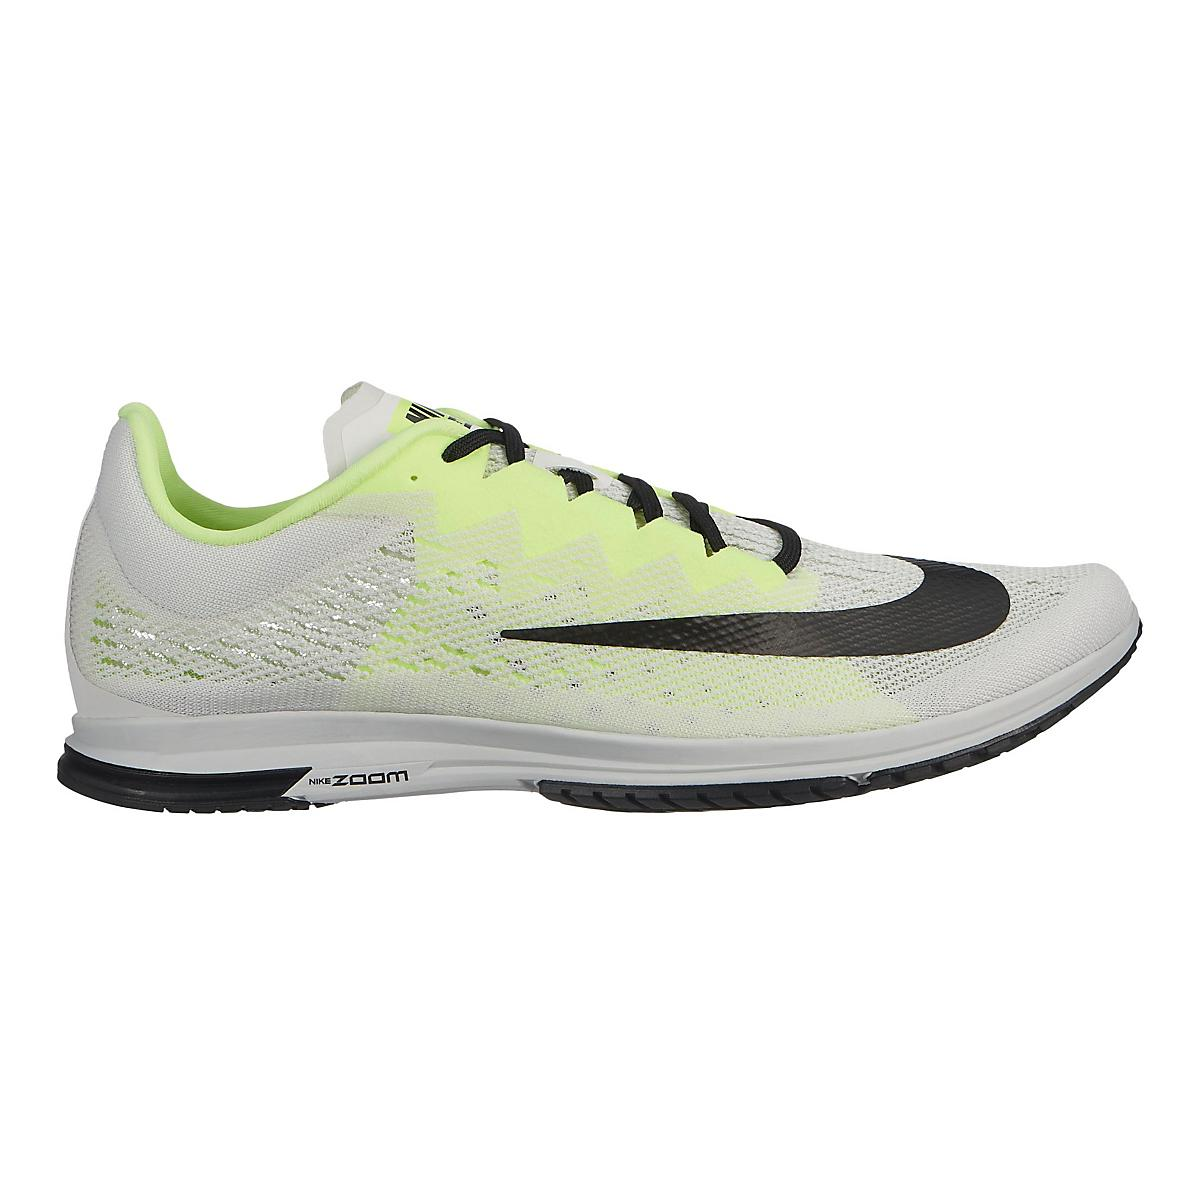 bab360caba649 Nike Zoom Streak LT 4 Racing Shoe at Road Runner Sports